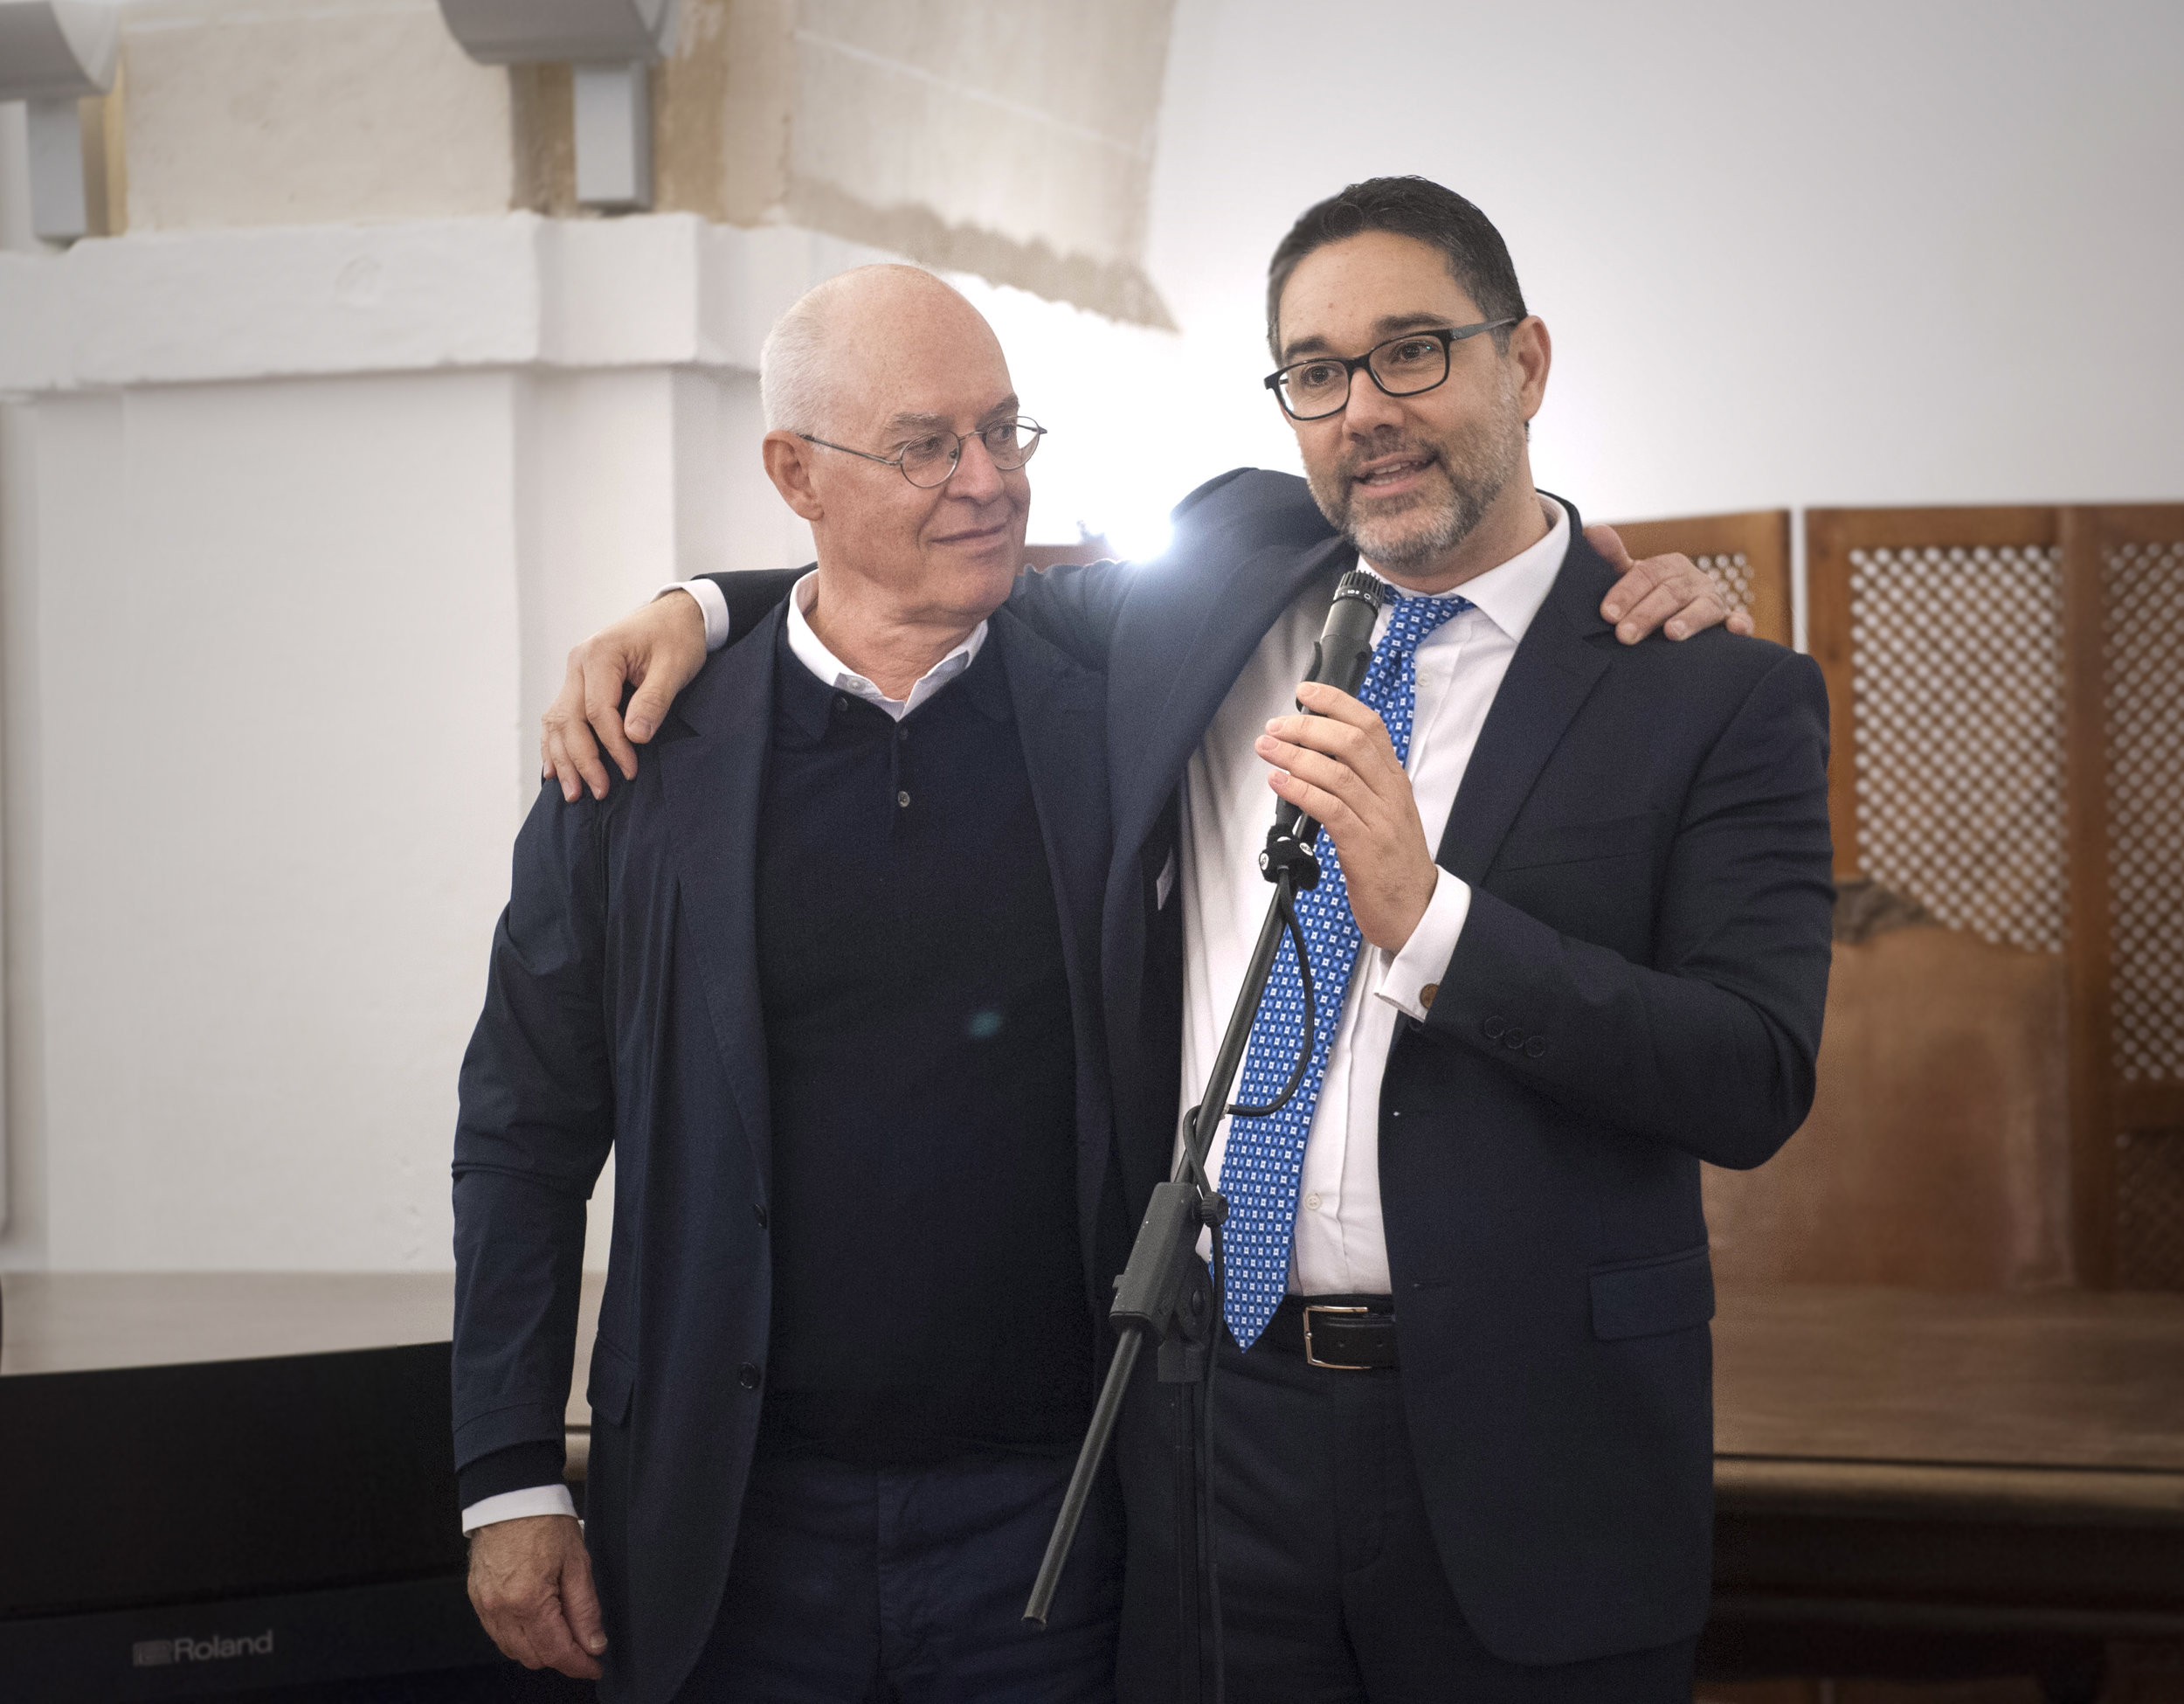 WASAC's Christian Pleijel with Gianni Chianetta, Director of the Greening the Islands announcing the 2019 conference in the Baltic